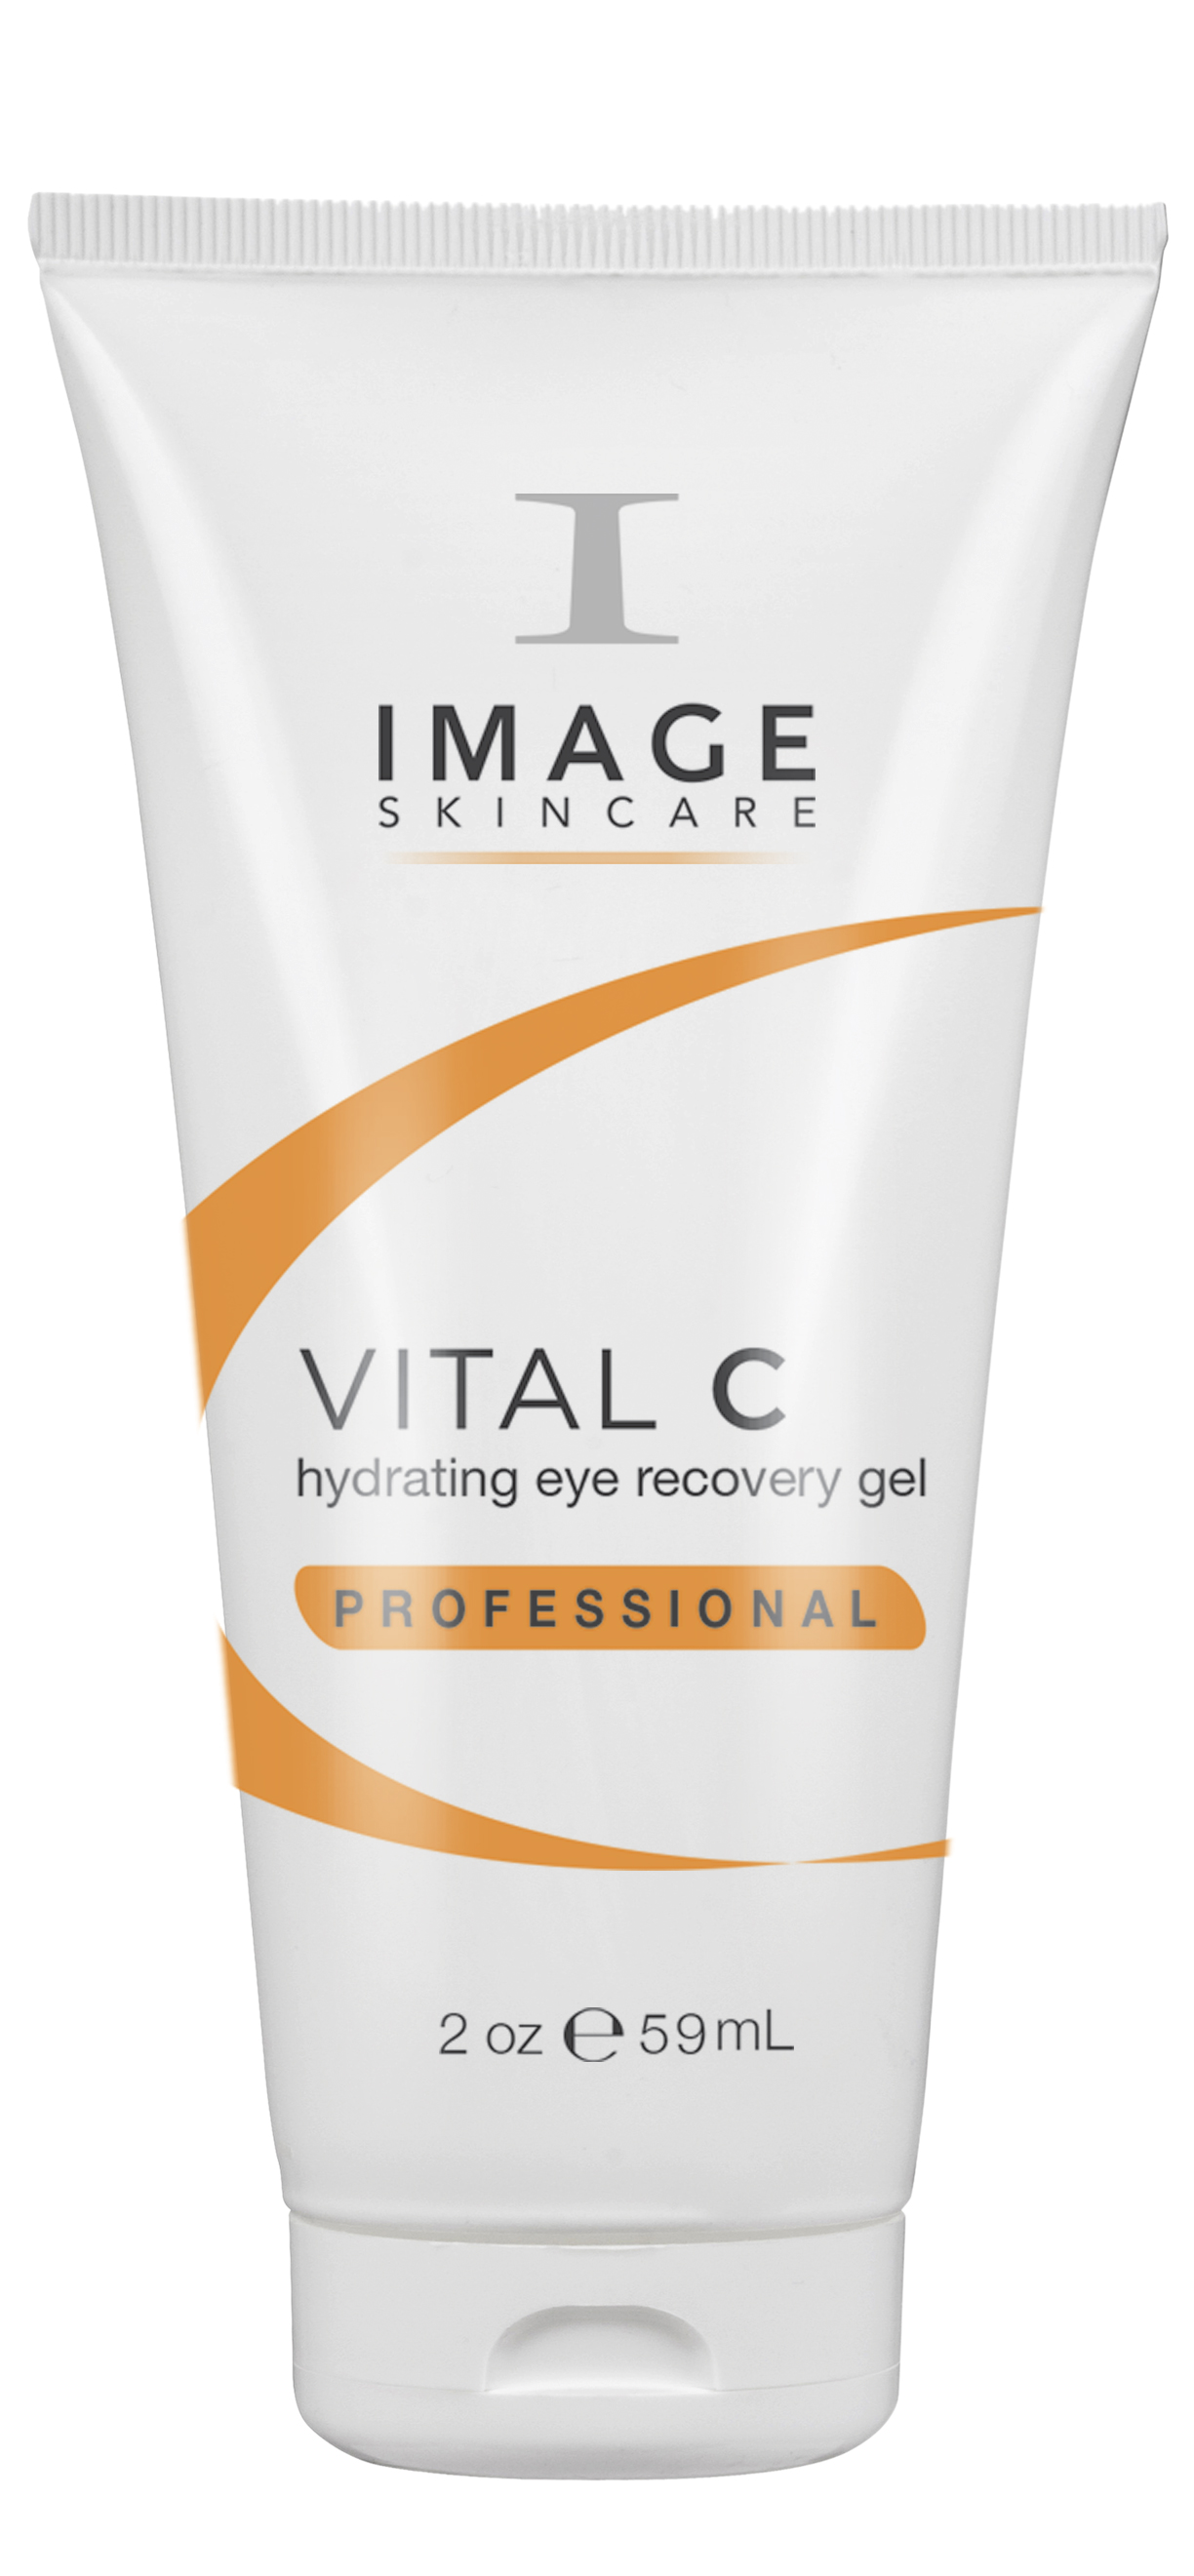 Vital C Hydrating Eye Recovery Gel The Harley Laser Specialists